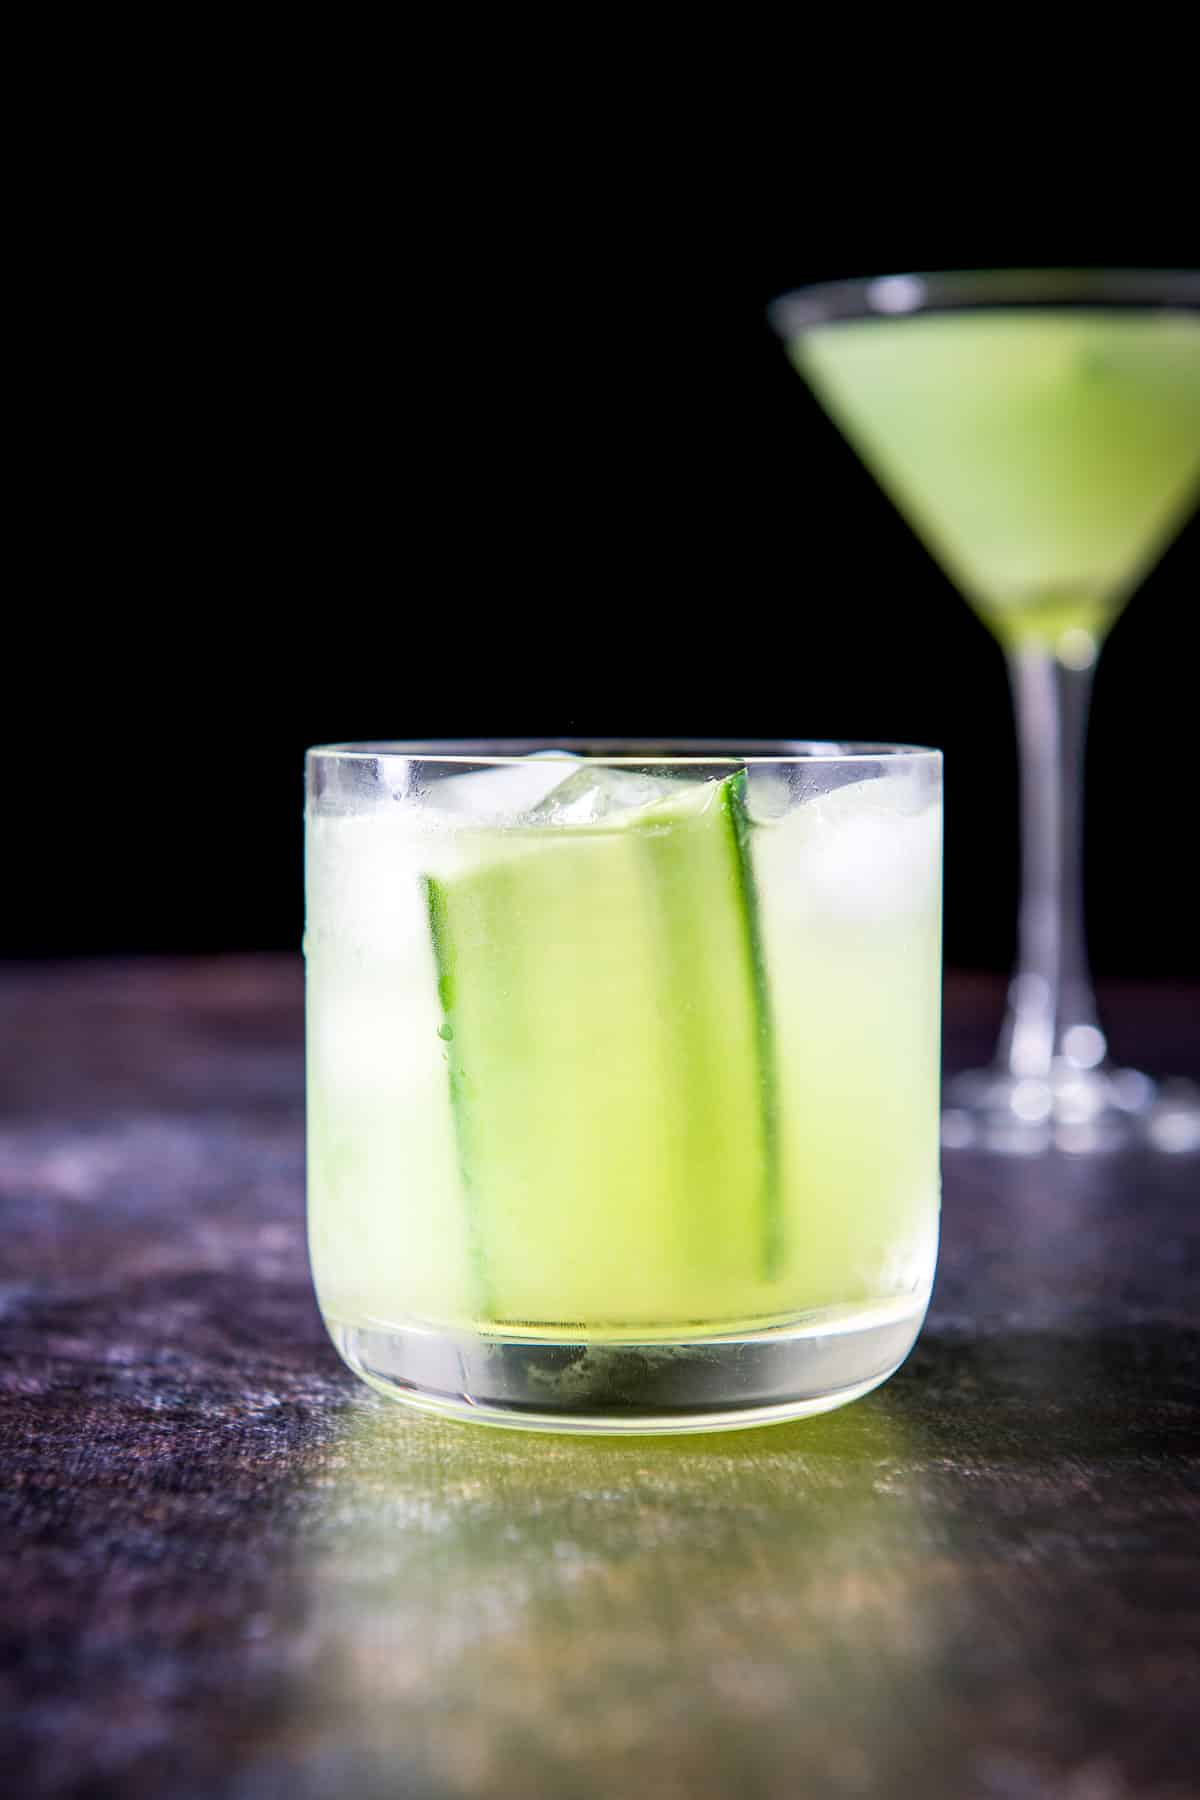 The cucumber gimlet in a double old fashioned glass with the classic martini in the back. There is a cucumber slice in it as garnish